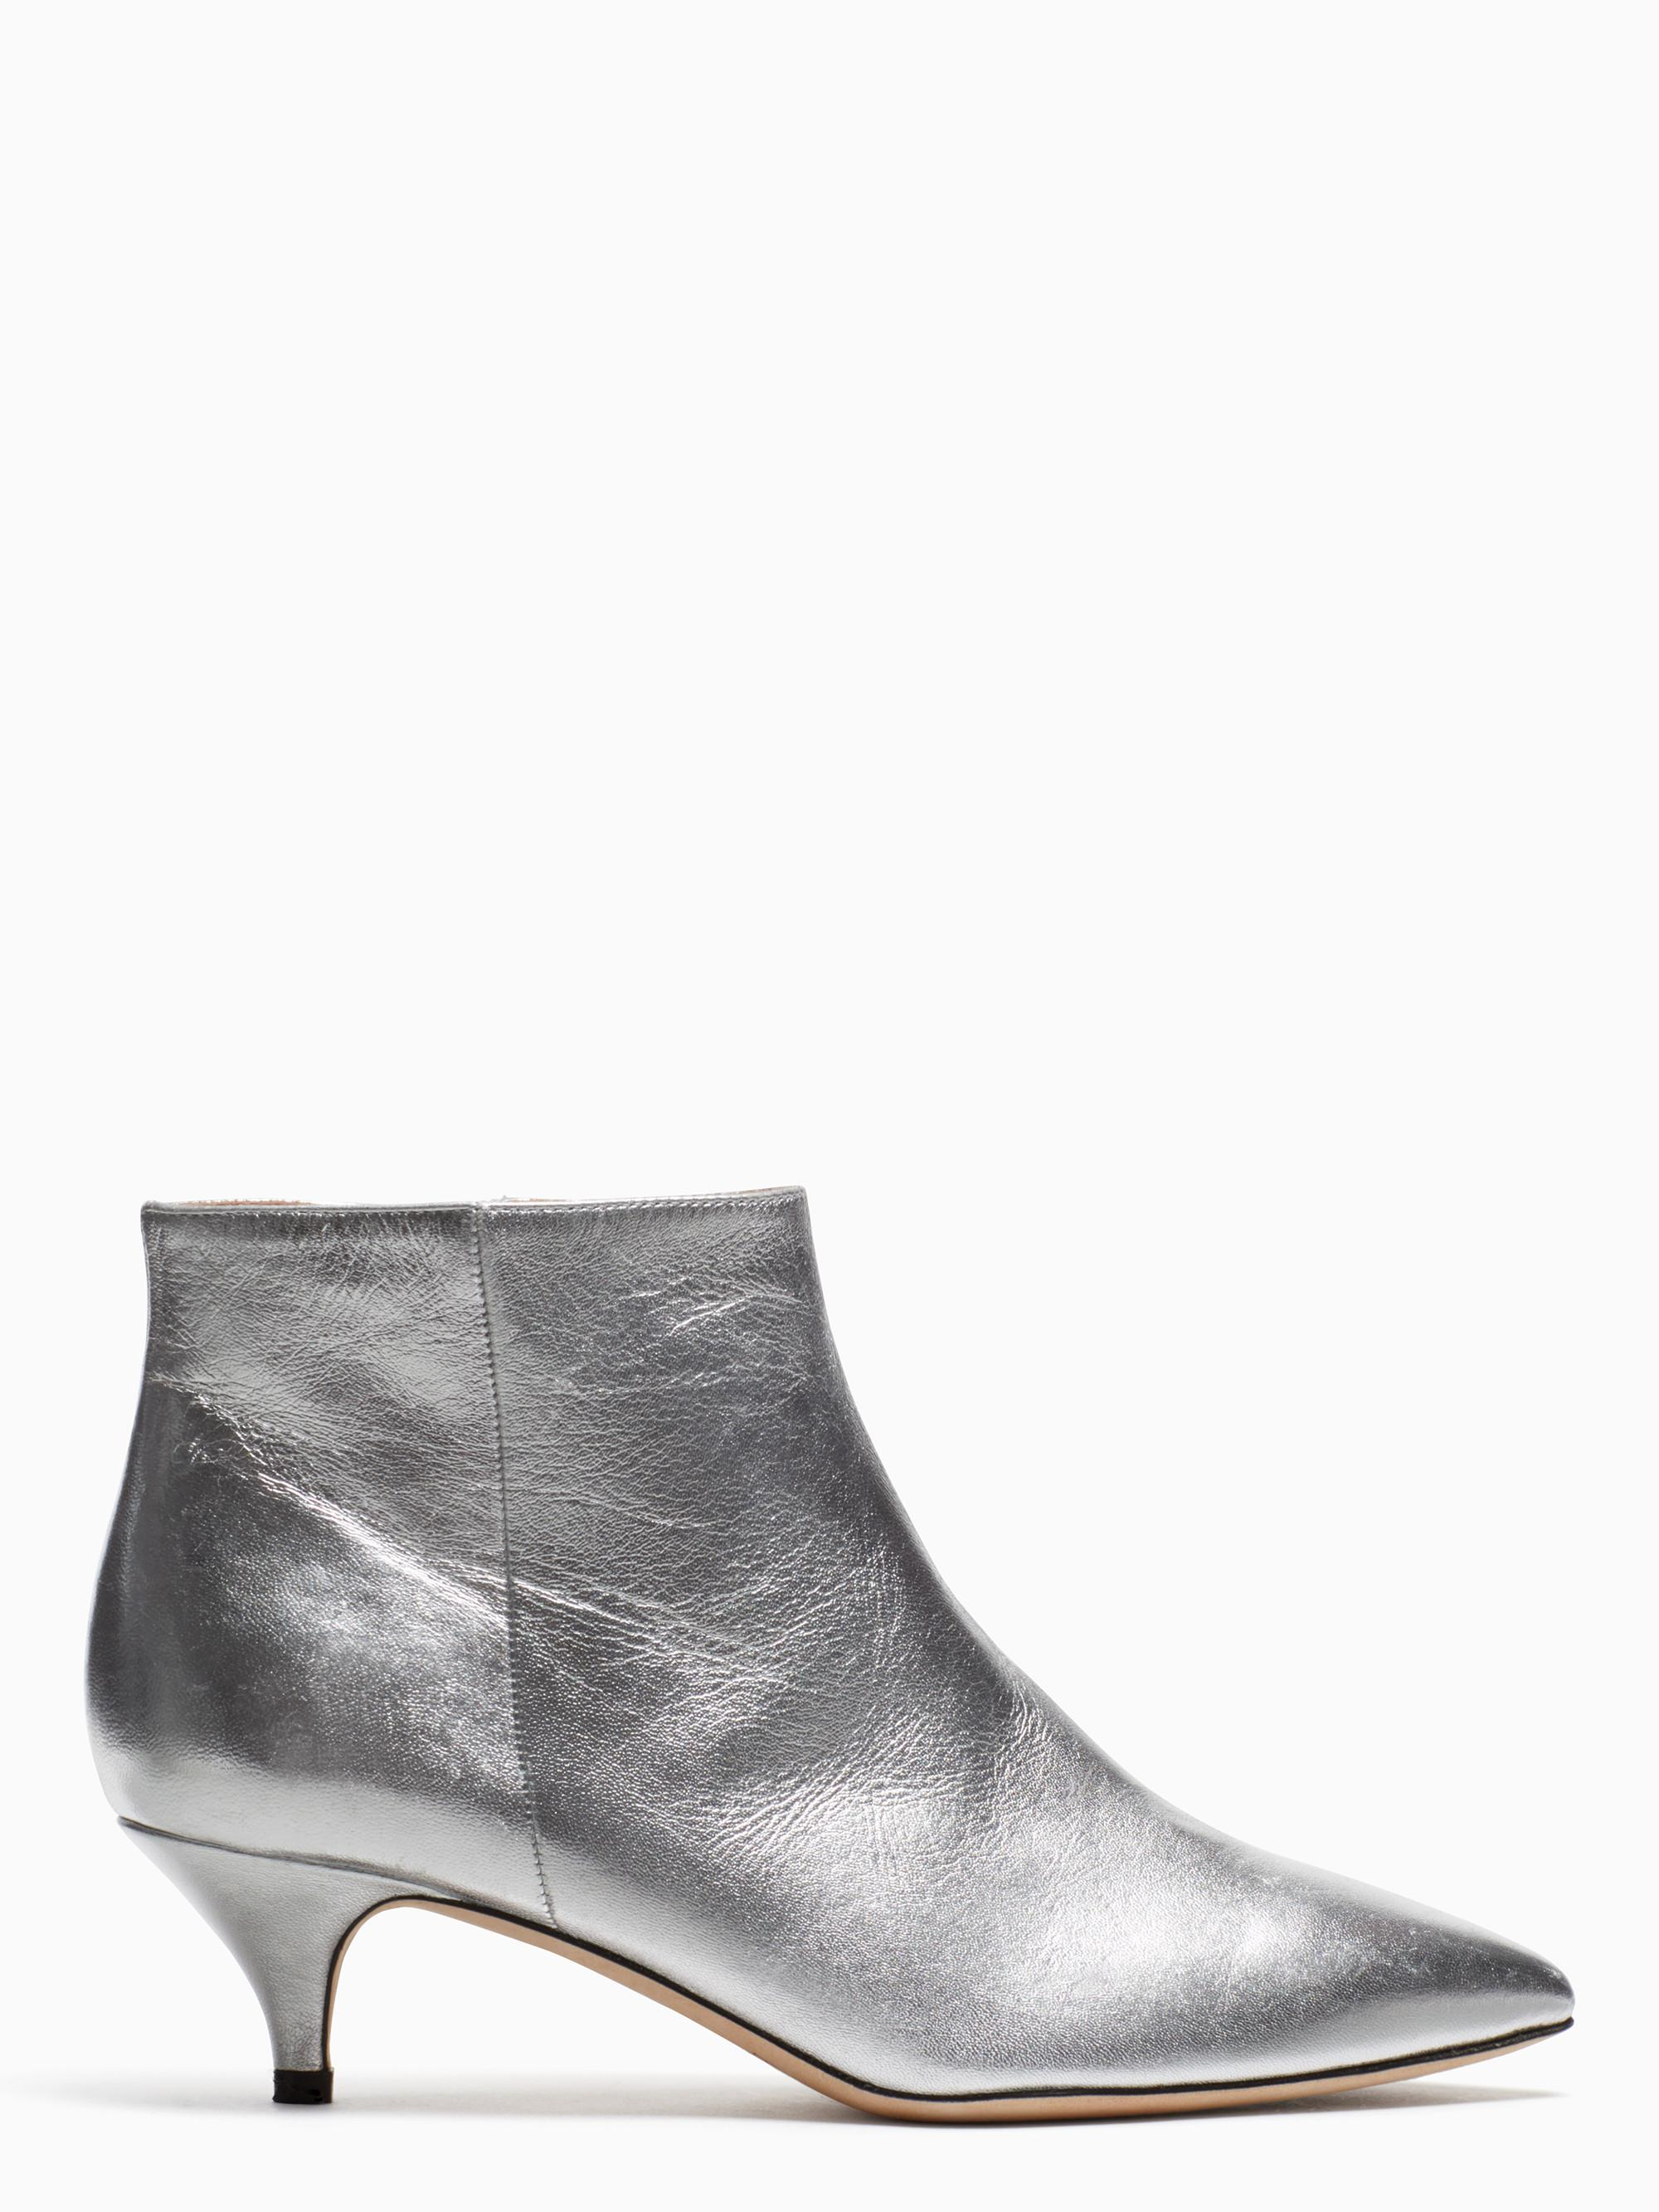 f209d97c5adf Lyst - Kate Spade Olly Boots in Metallic